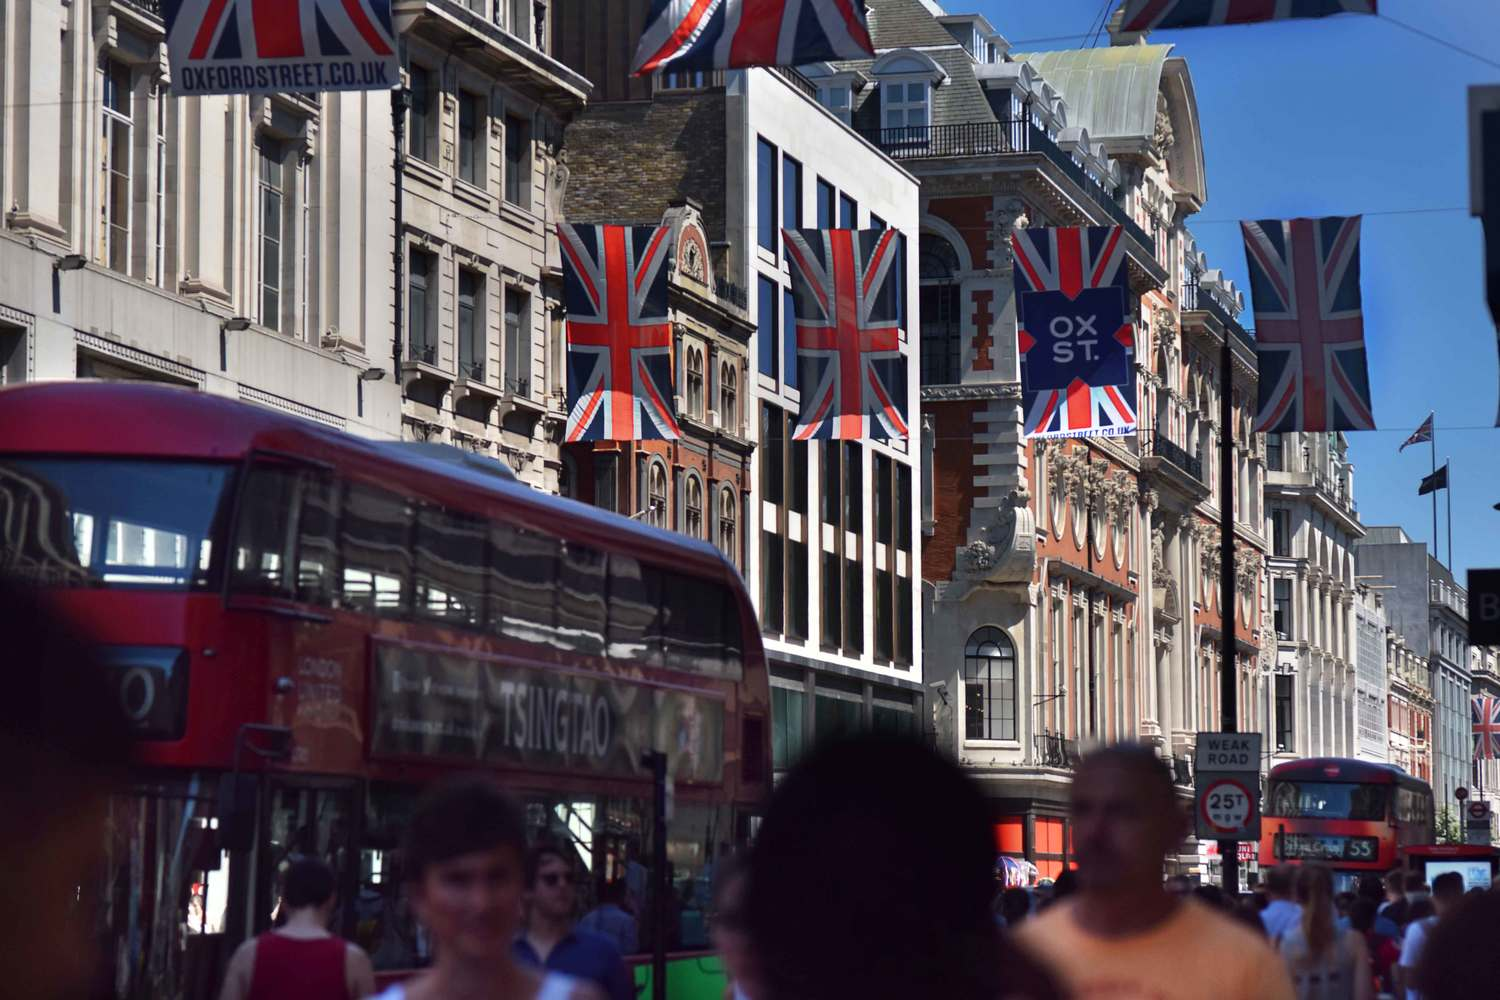 Oxford Street, London, UK. Image©thingstodot.com